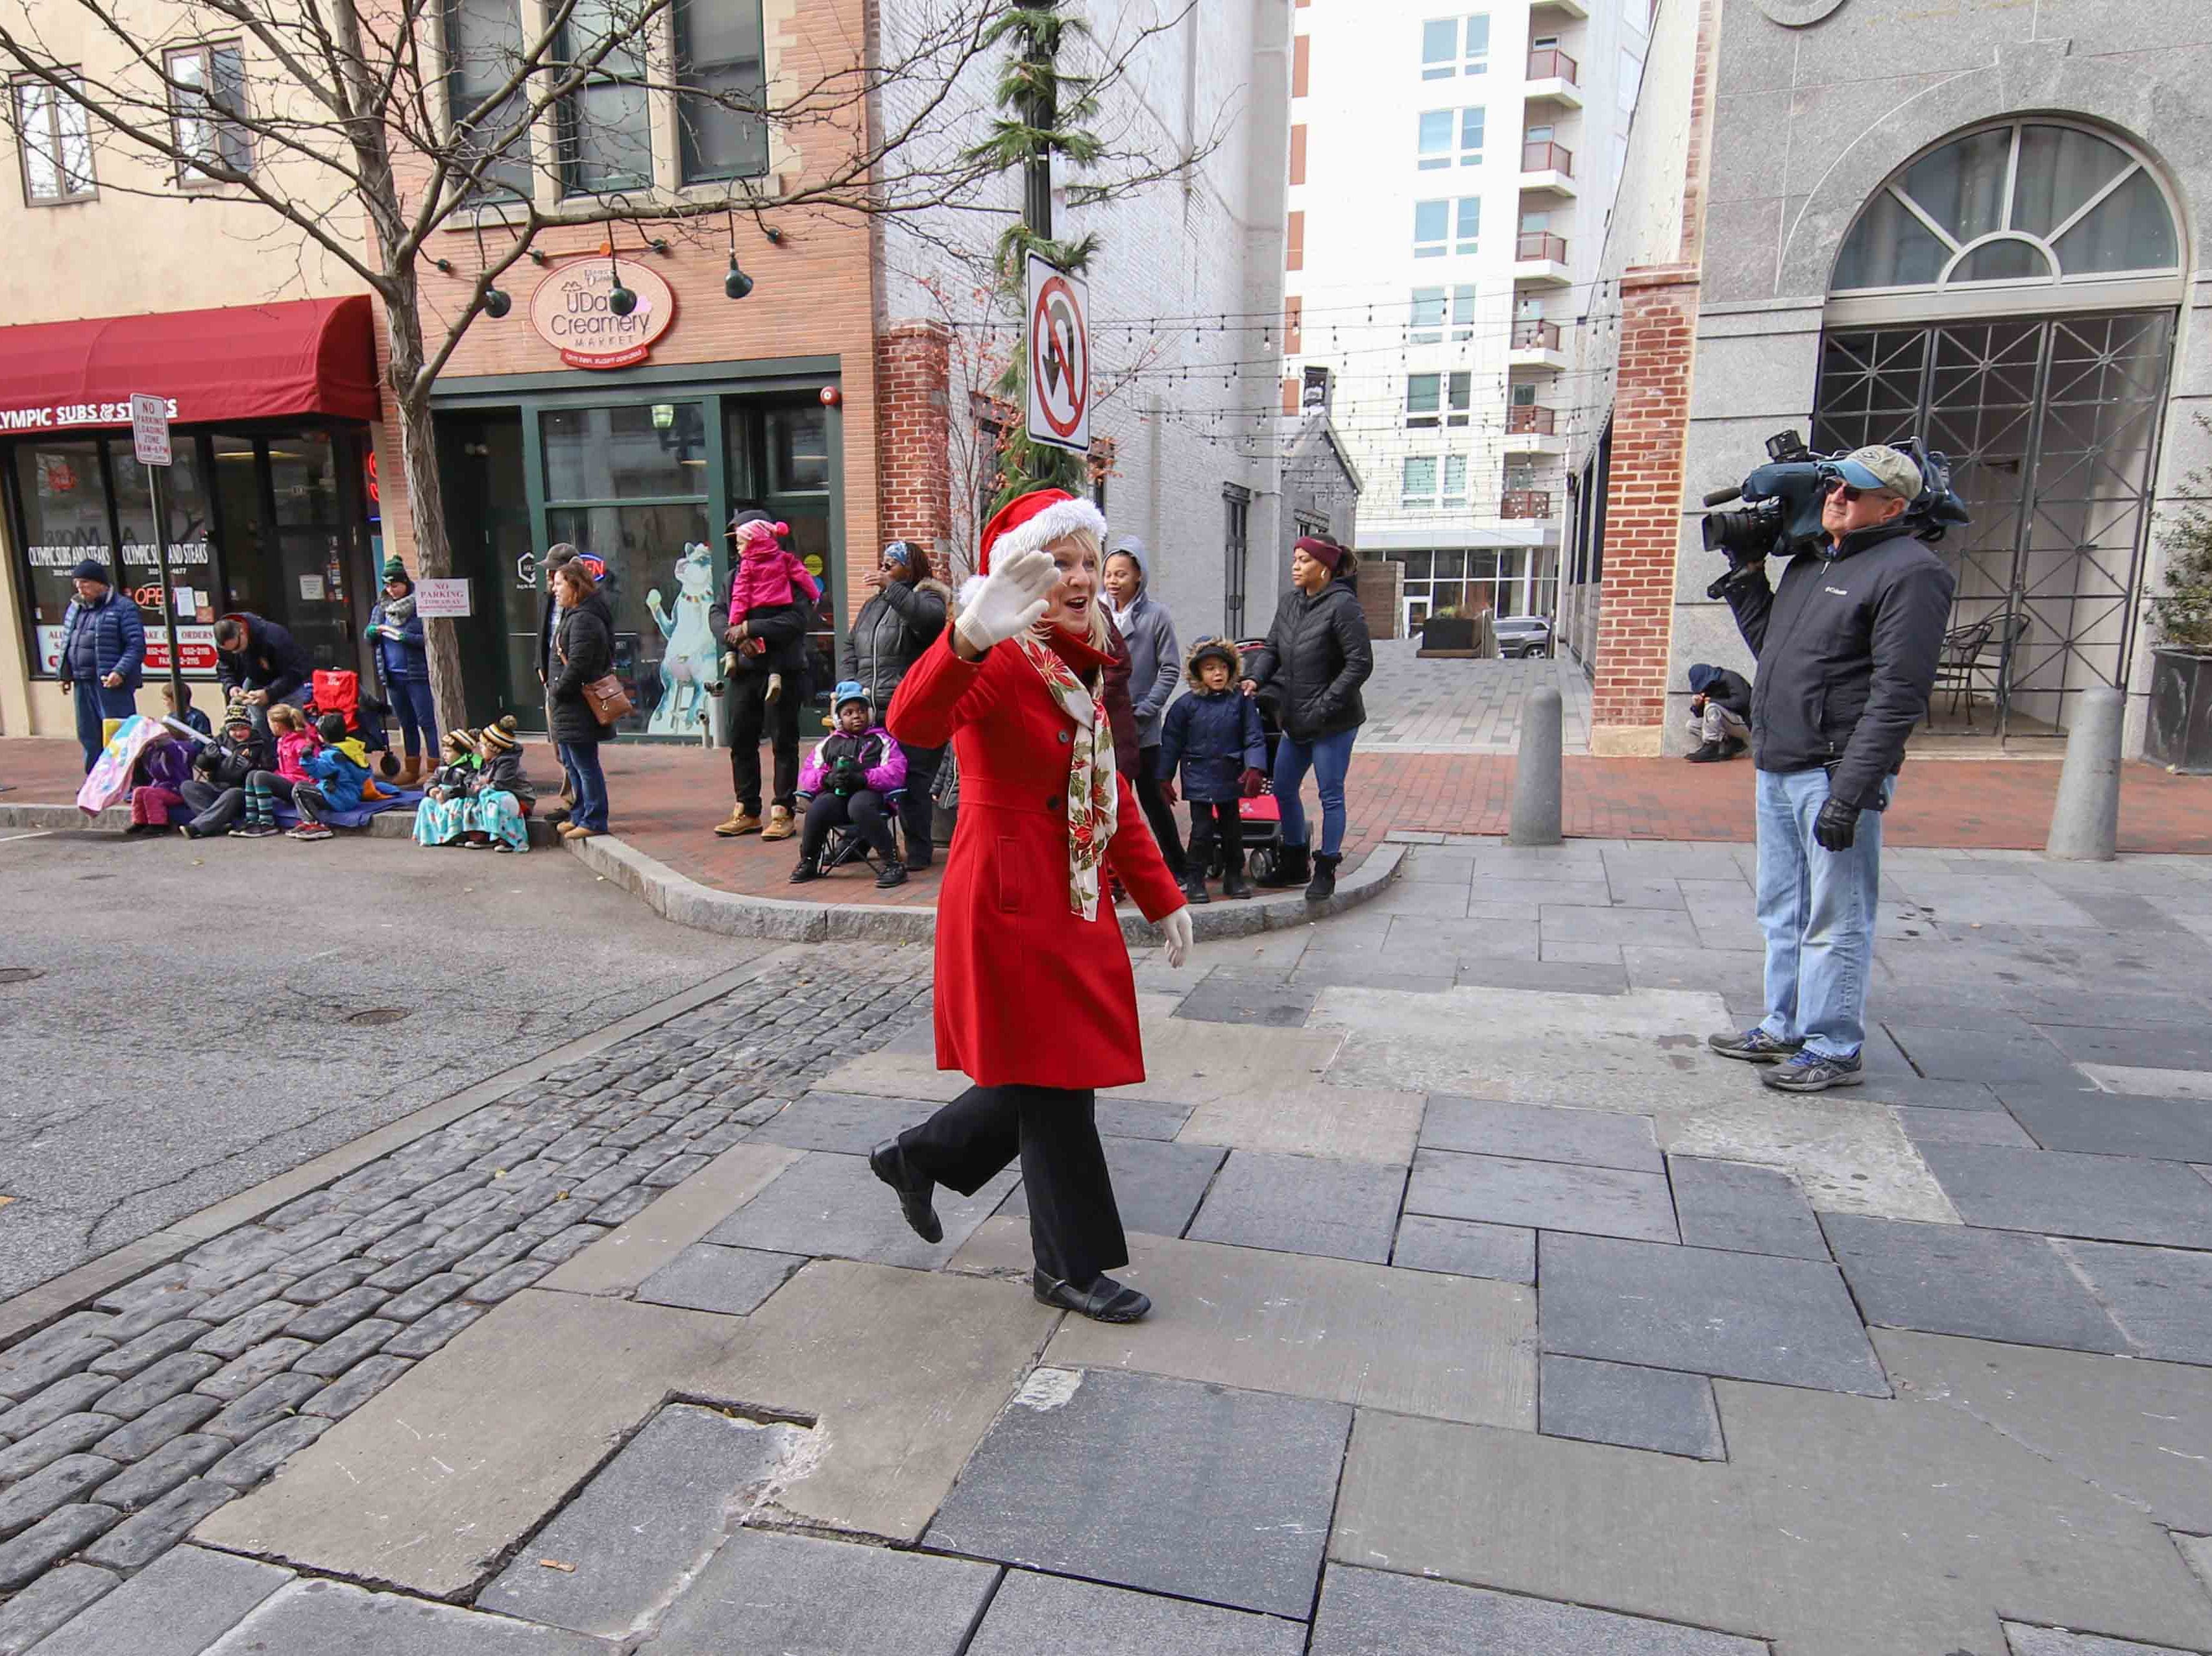 Delaware lieutenant governor Bethany Hall-Long waves to spectators during the Wilmington Jaycees 55th Annual Christmas Parade along Market Street Saturday, Nov. 24, 2018, in Wilmington, Delaware.